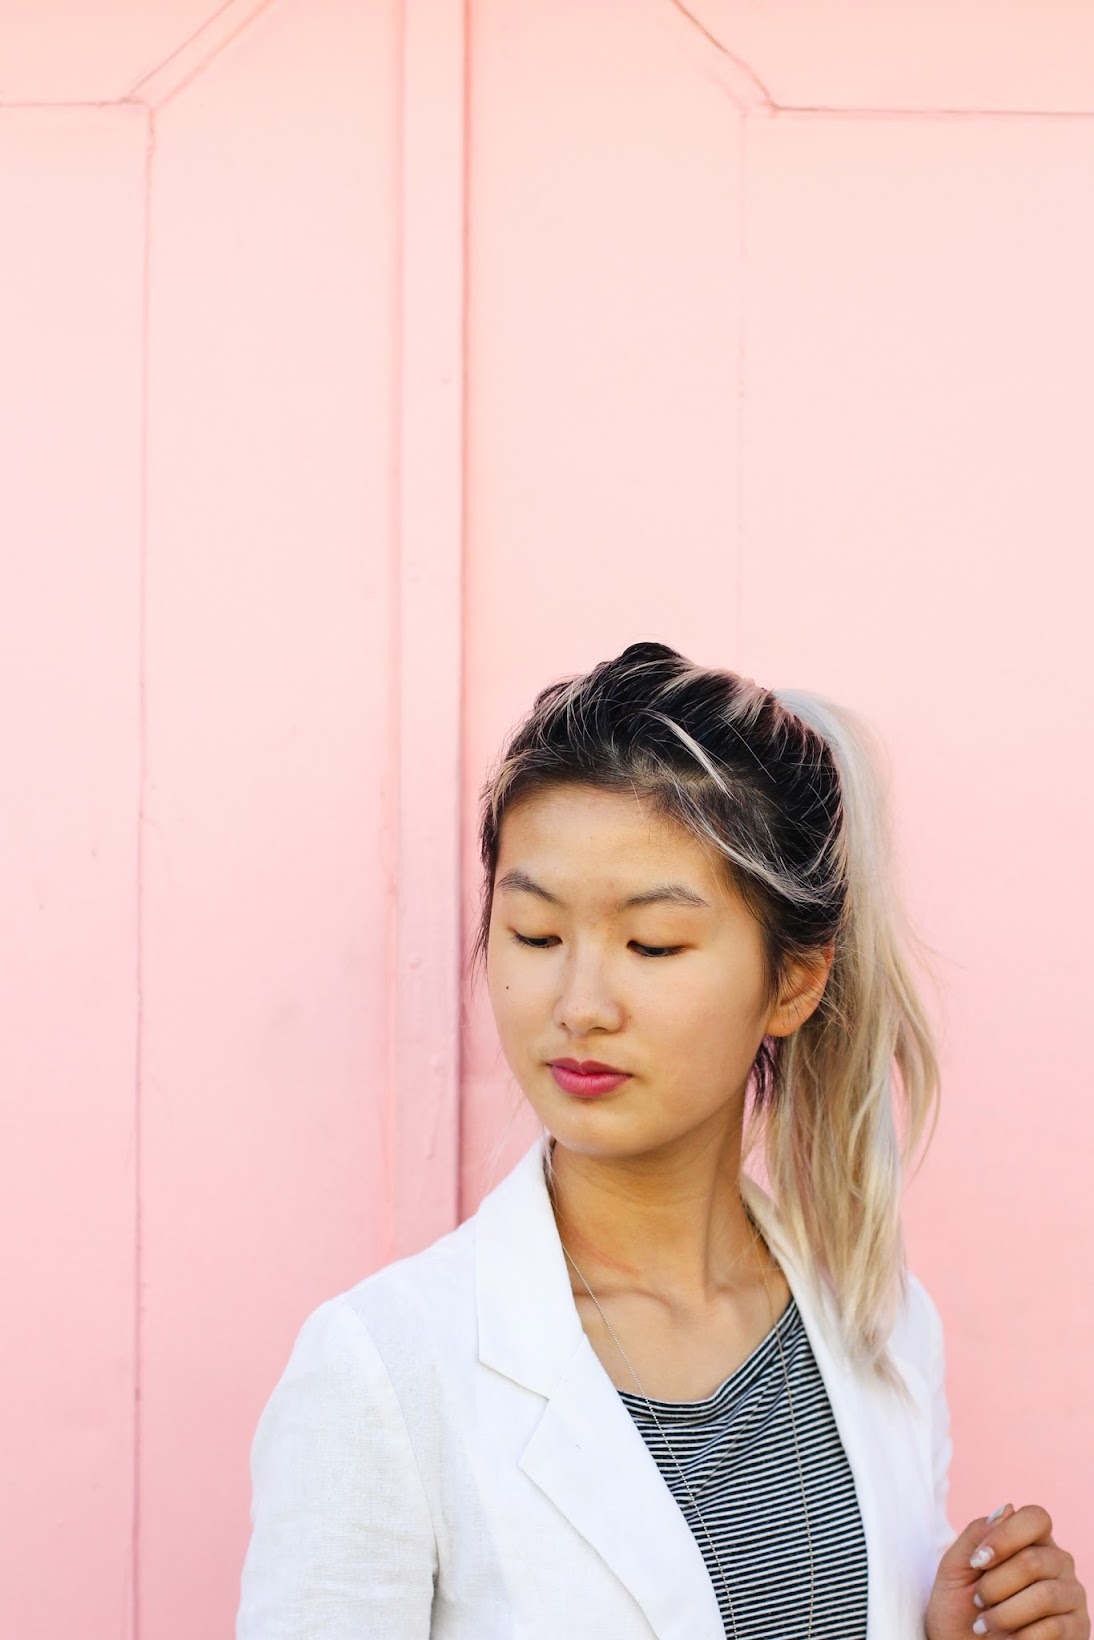 Fall lip colors paired with summer whites